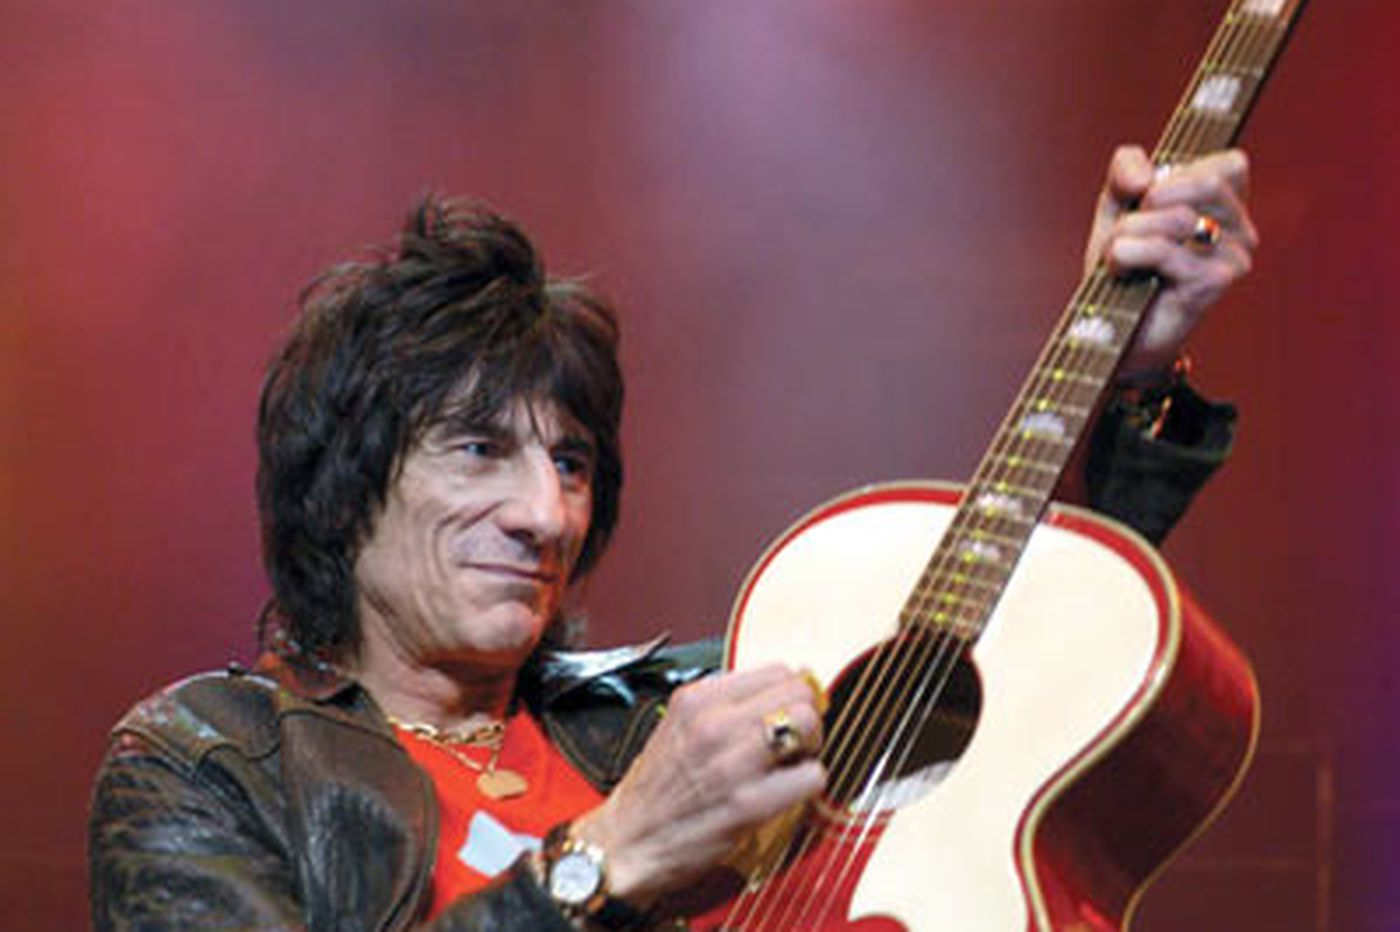 Ron Wood can do Atlantic City solo gig